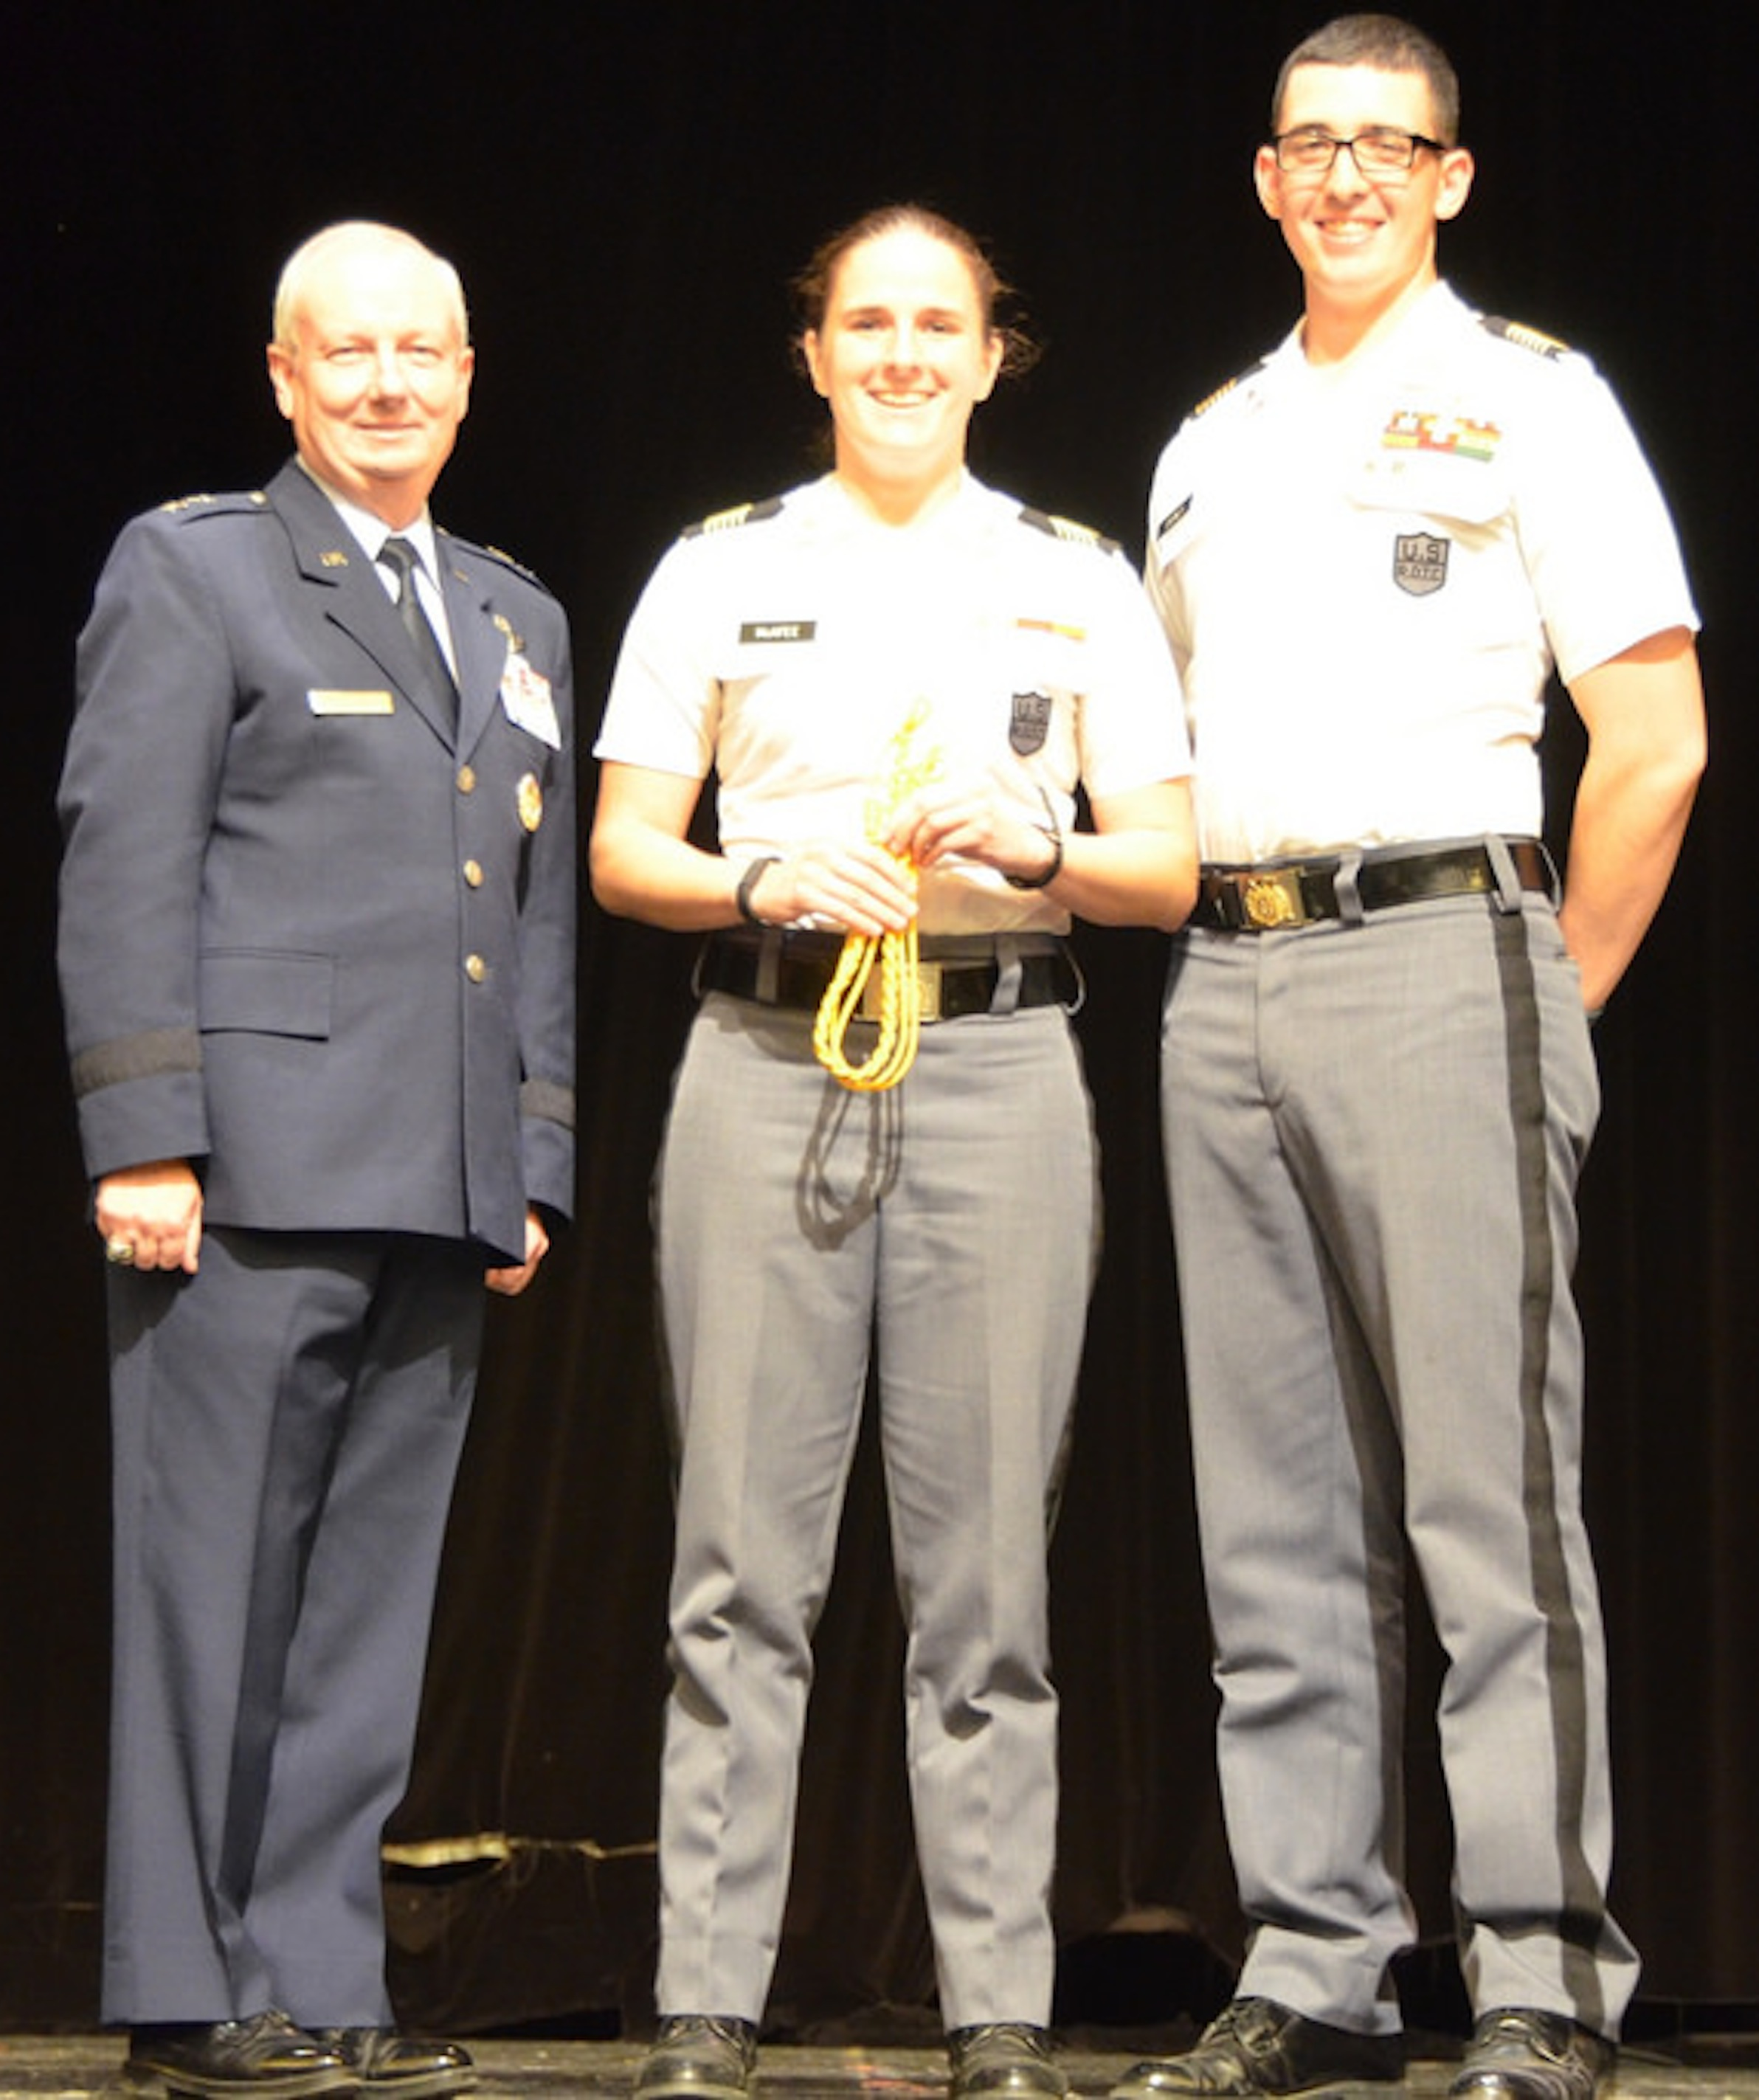 Cadet Rebecca McAfee, center, Hotel Company commander, accepts the Gold Cord from the Commandant of Cadets Maj. Gen. Randal Fullhart, left, and the Regimental Commander Cadet Jordan Disney, right.